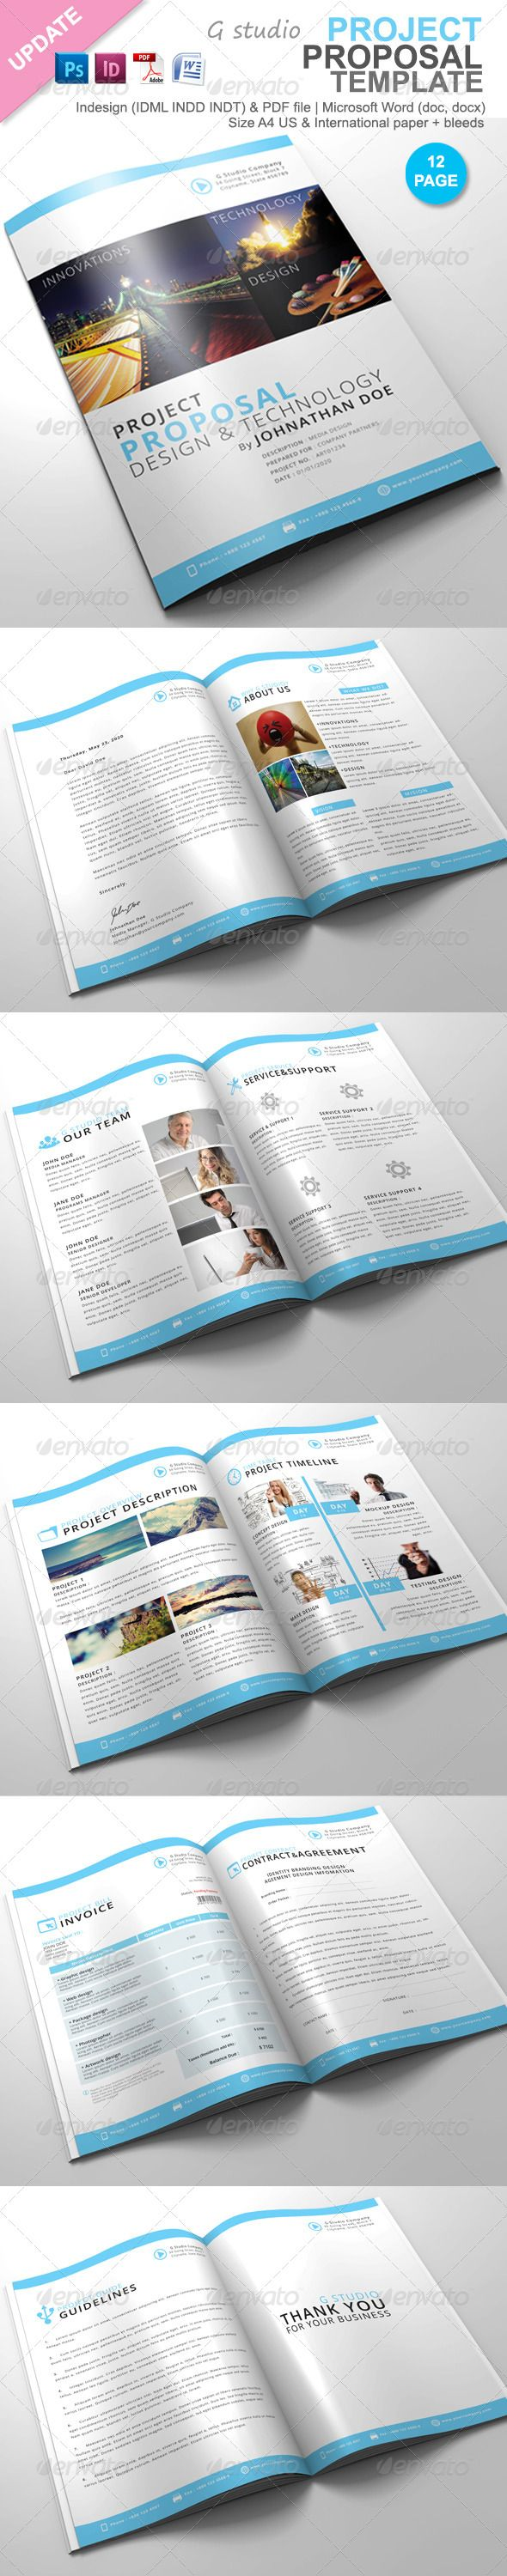 development project proposal template%0A Gstudio Project Proposal Template